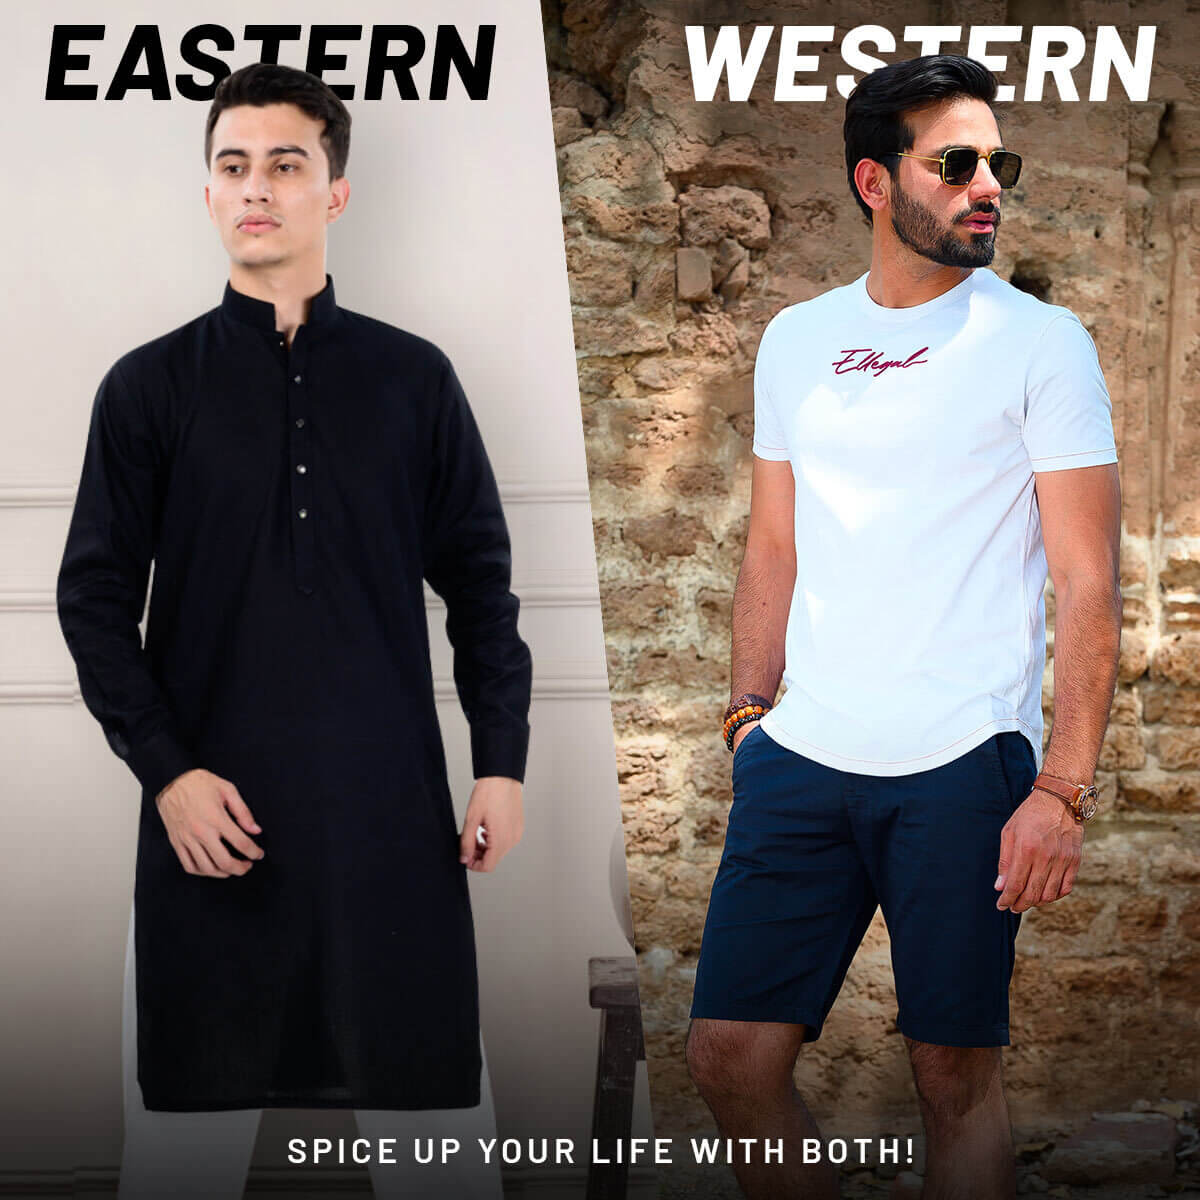 Evolution of Eastern & Western Style: Culture and Fashion